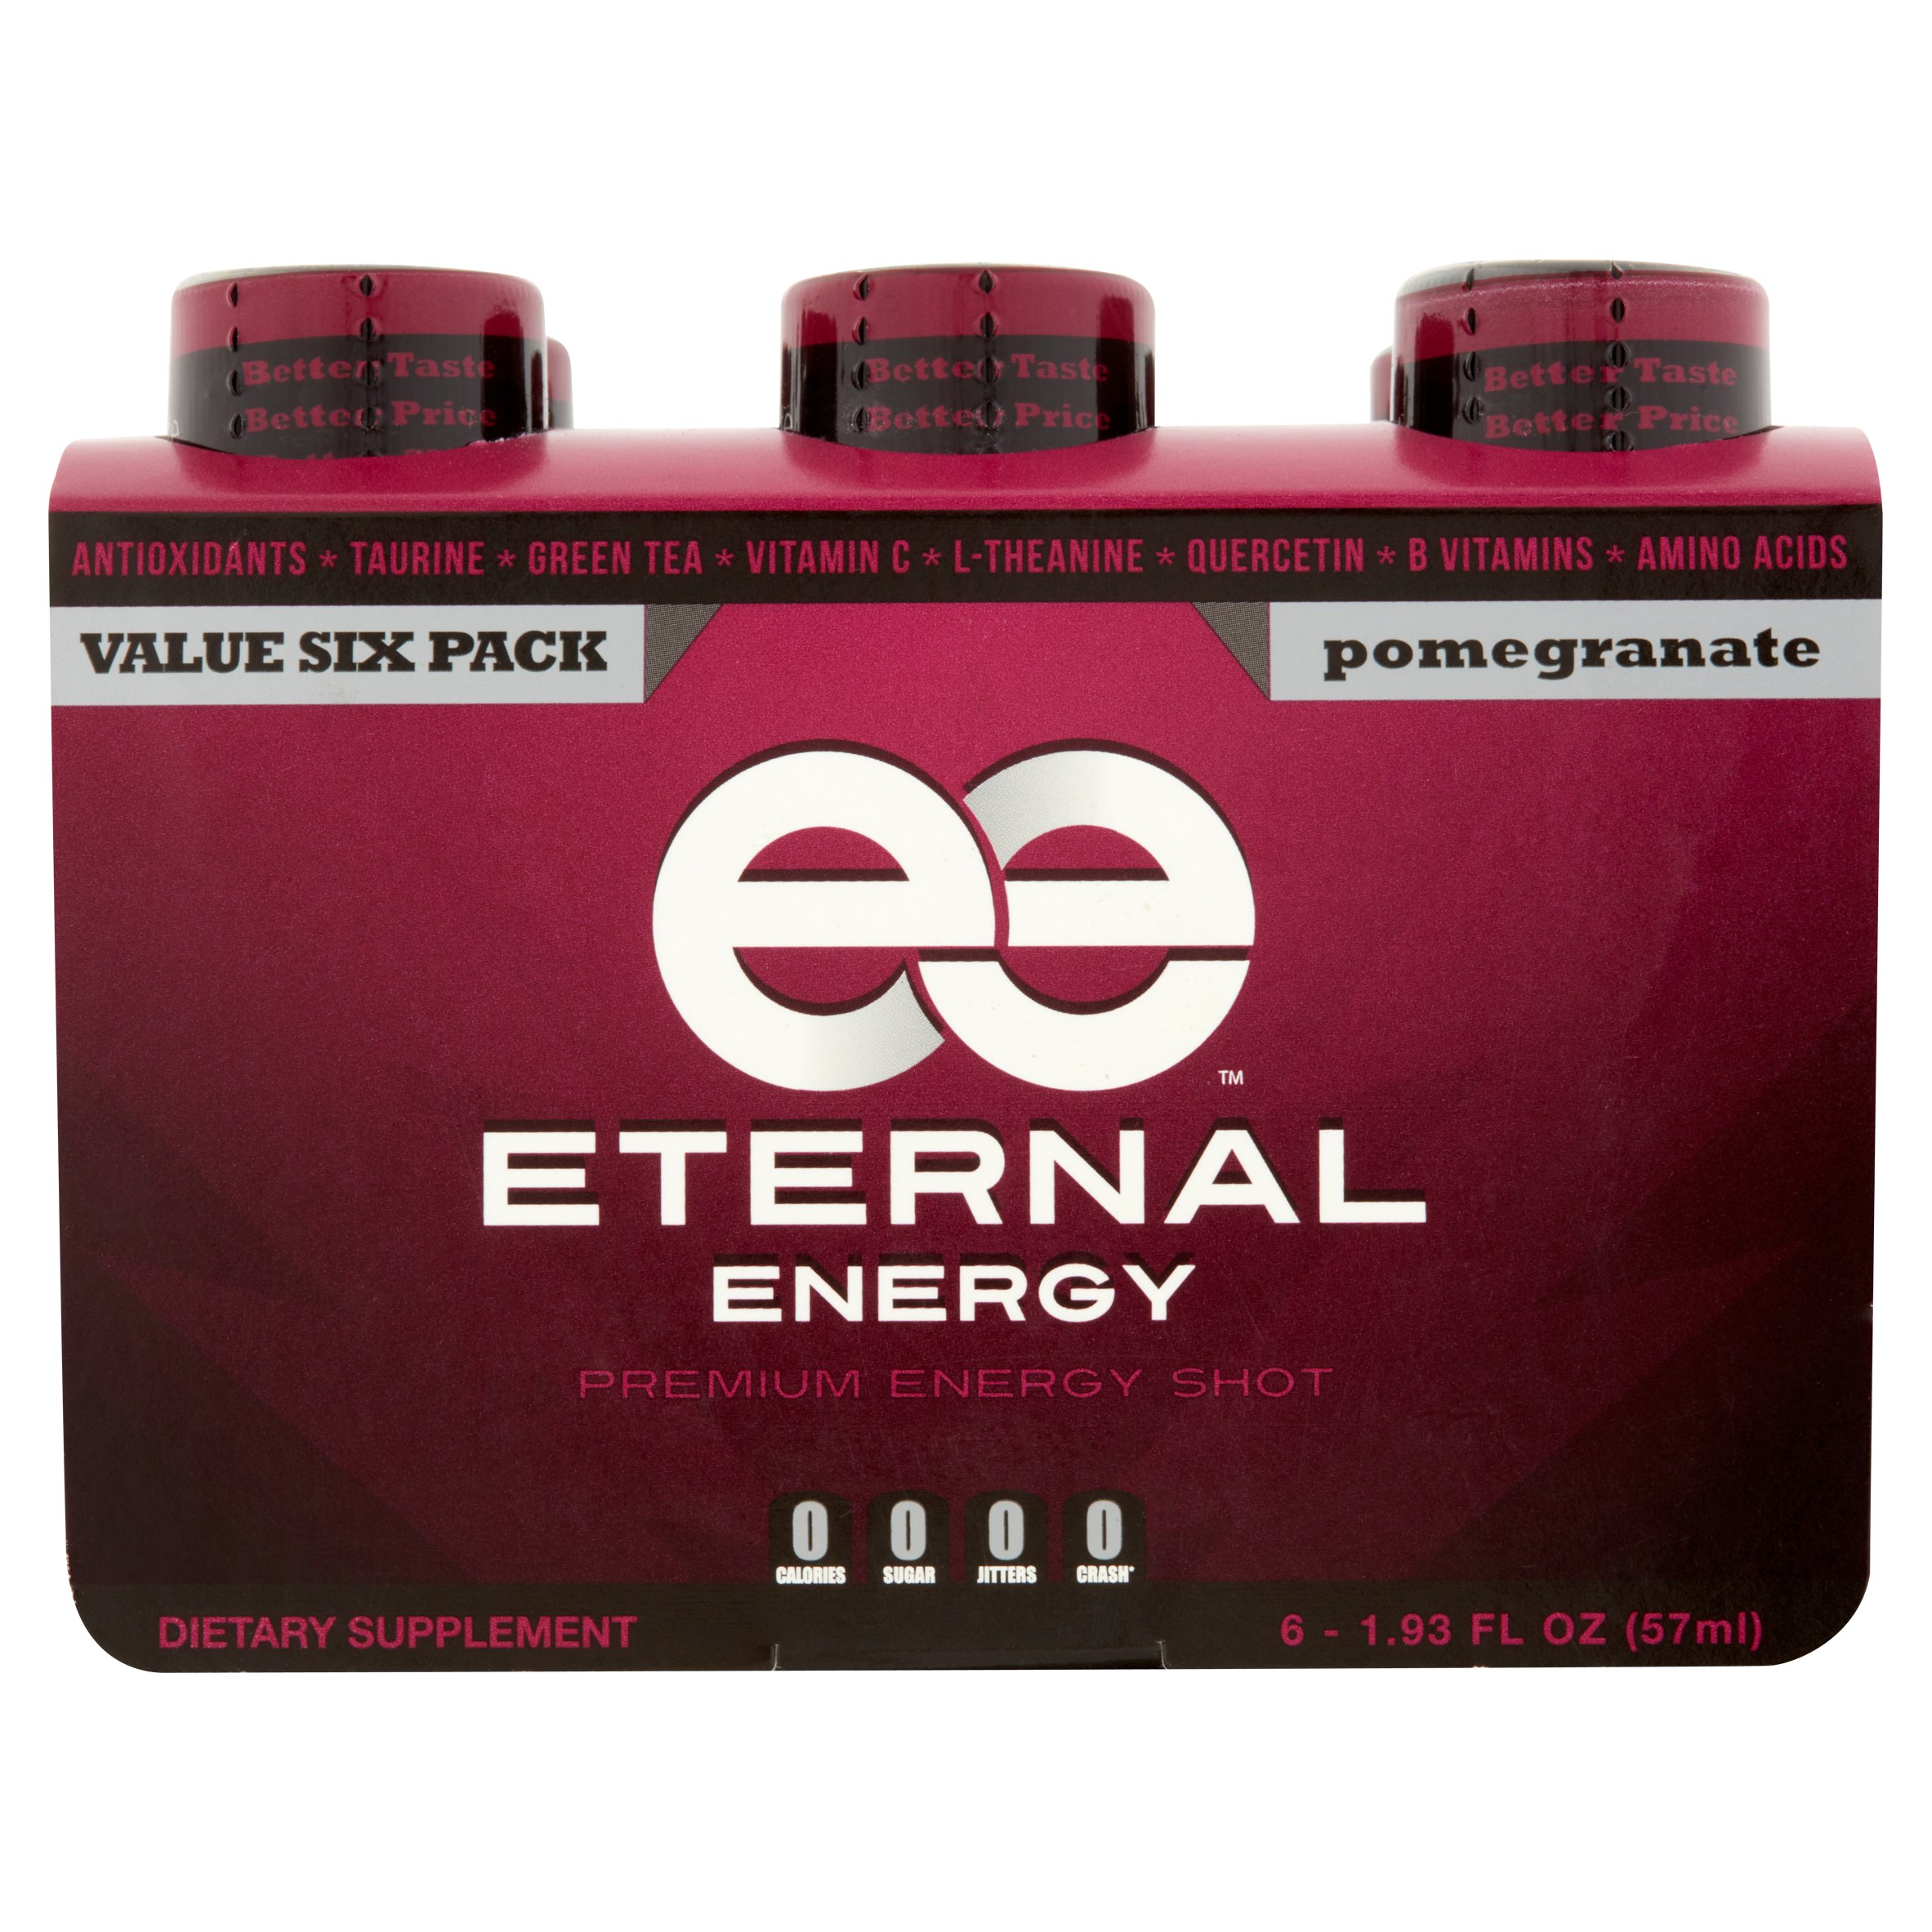 Eternal Energy Premium Energy Shot, Pomegranate, 1.93 Fl Oz, 6 Ct